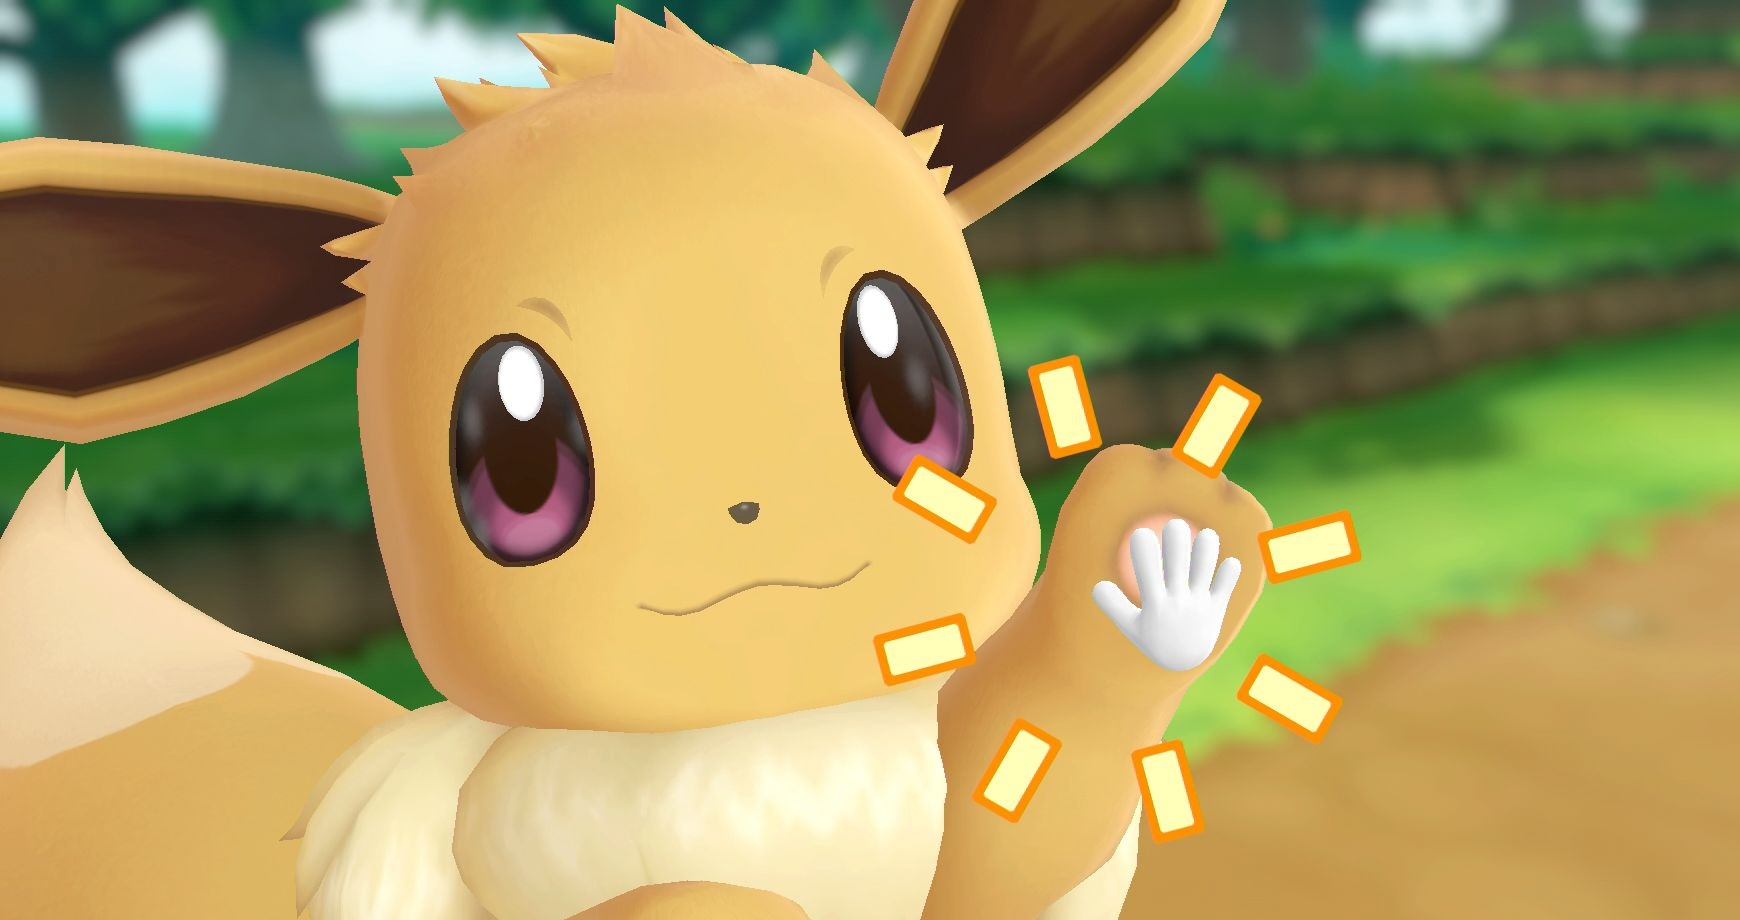 Eevee Nintendo Switch Pokémon Let's Go